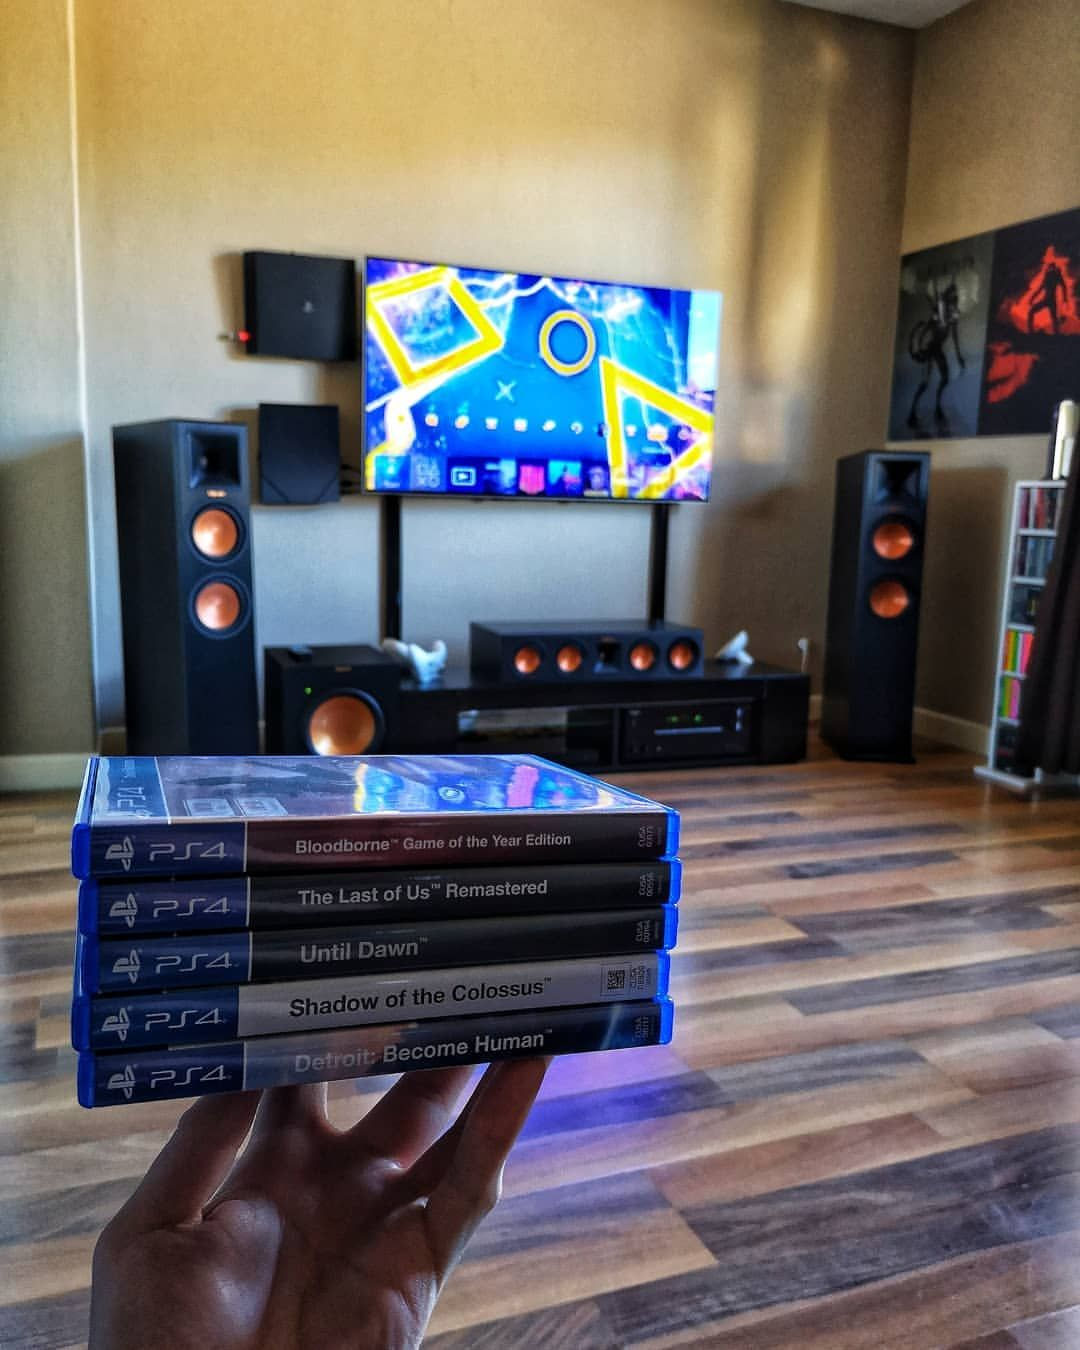 Pin By Brothertedd On Video Games Game Room Design Gamer Room